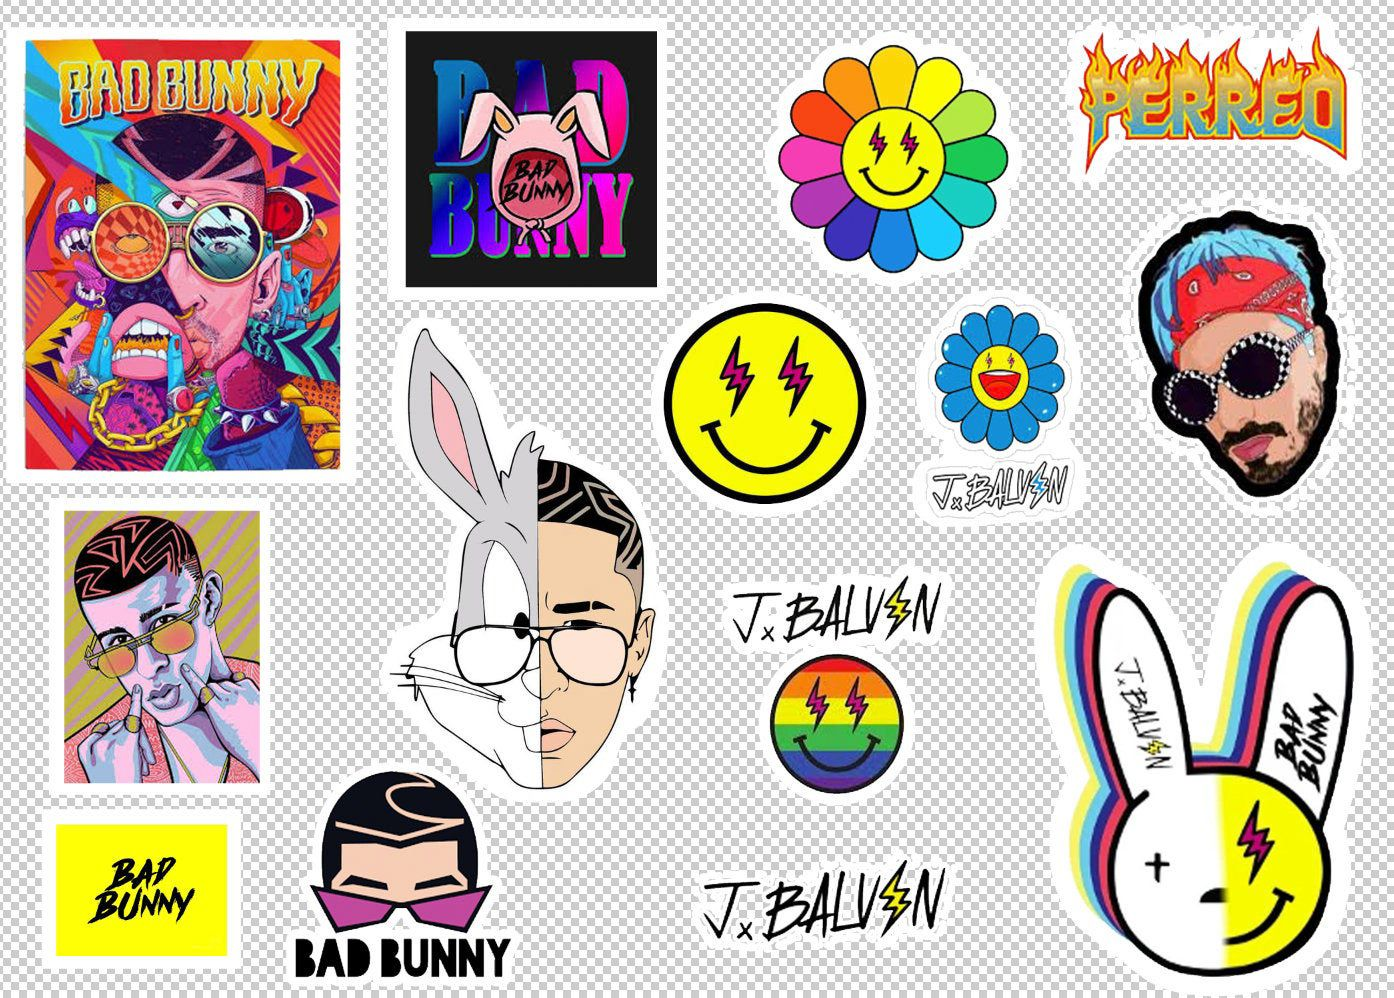 Bad Bunny and J Balvin stickers  Bad bunny Free shipping   musician  YHLQMDLG   laptop cute - Print stickers, Stickers, Bunny, Cute, Etsy, Etsy gift card - 1 full sheet containing J Balvin and bad bunny (trap) stickers  Free shipping!